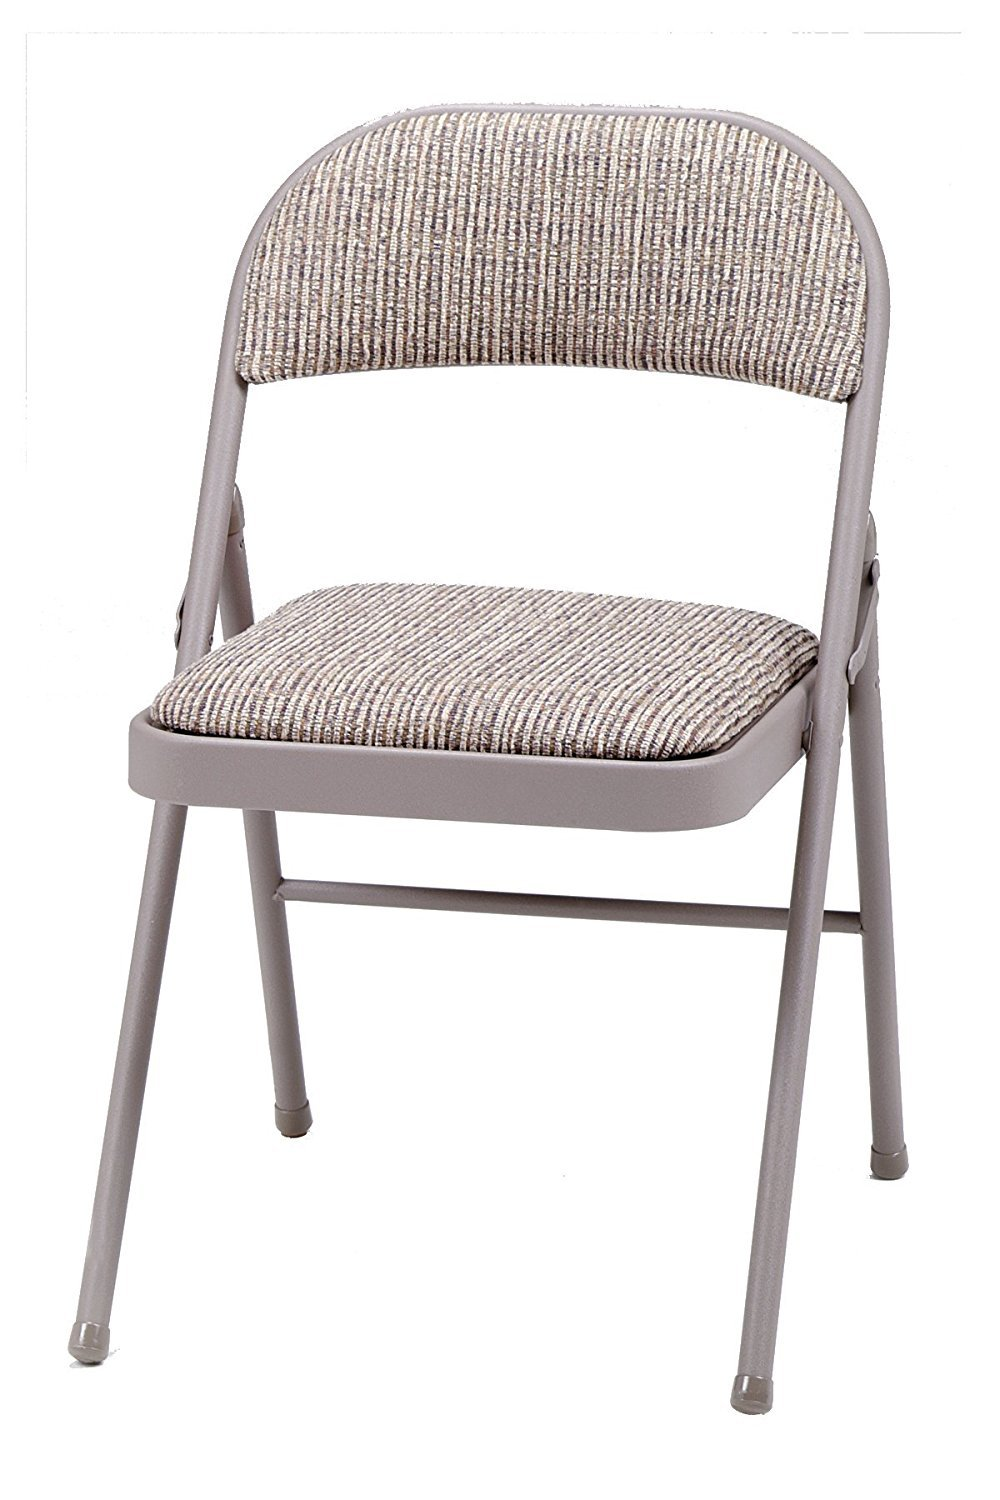 Meco Deluxe Fabric Padded Folding Chair Review